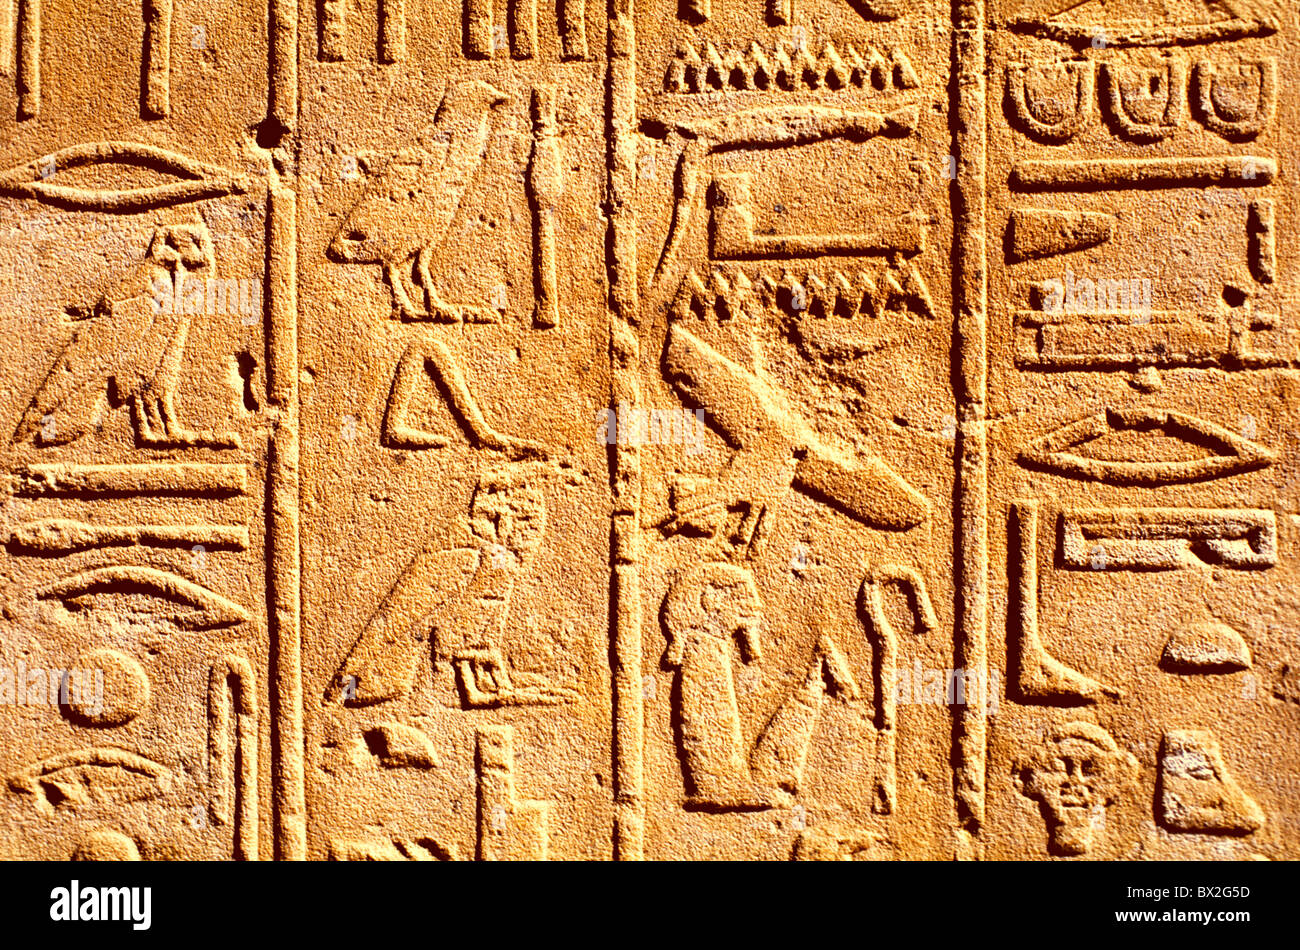 Egypt North Africa Handwriting Hieroglyphs Karnak temple Luxor Symbol Symbols Writing - Stock Image